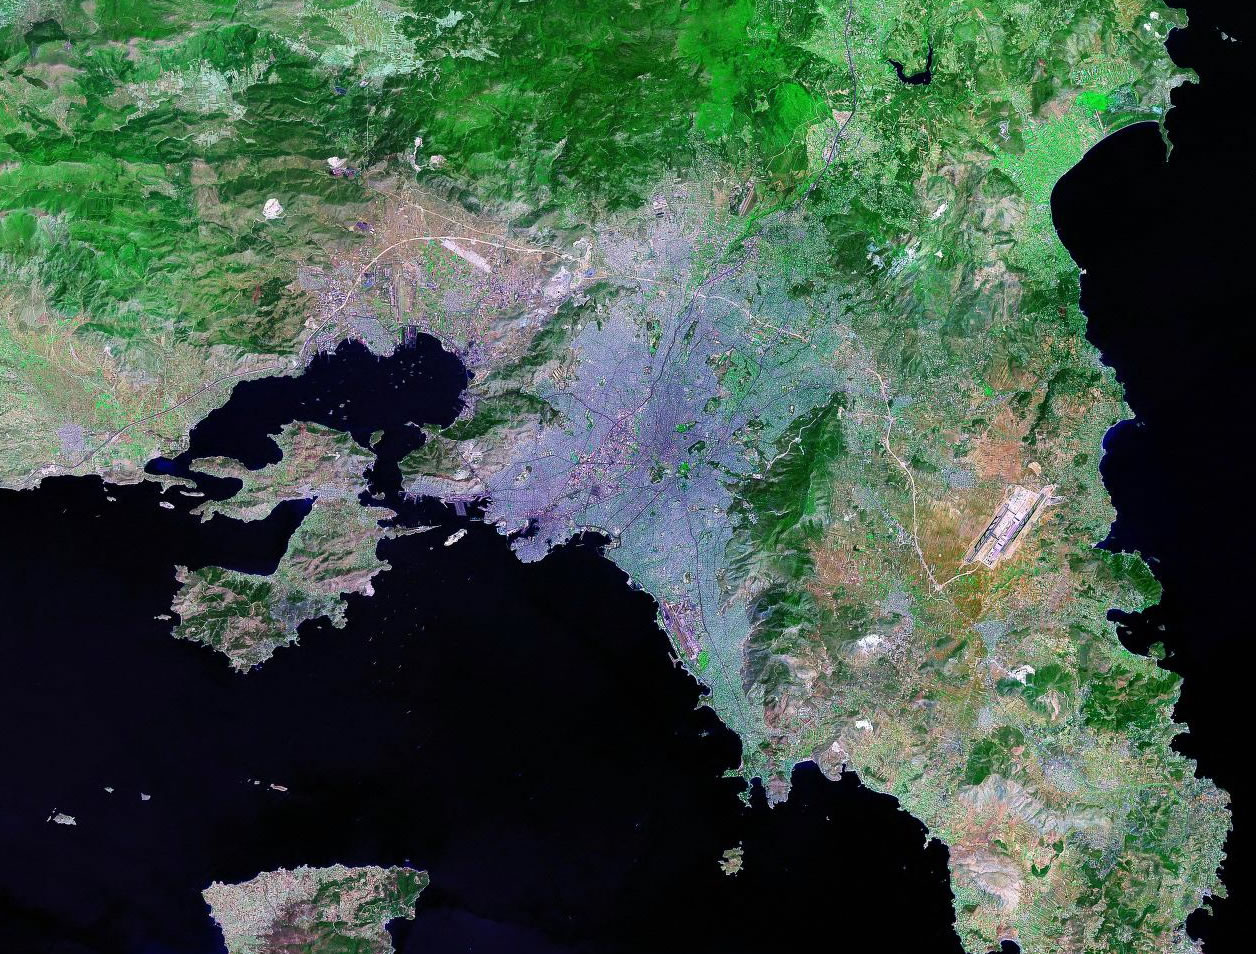 Athens Greece satellite image map